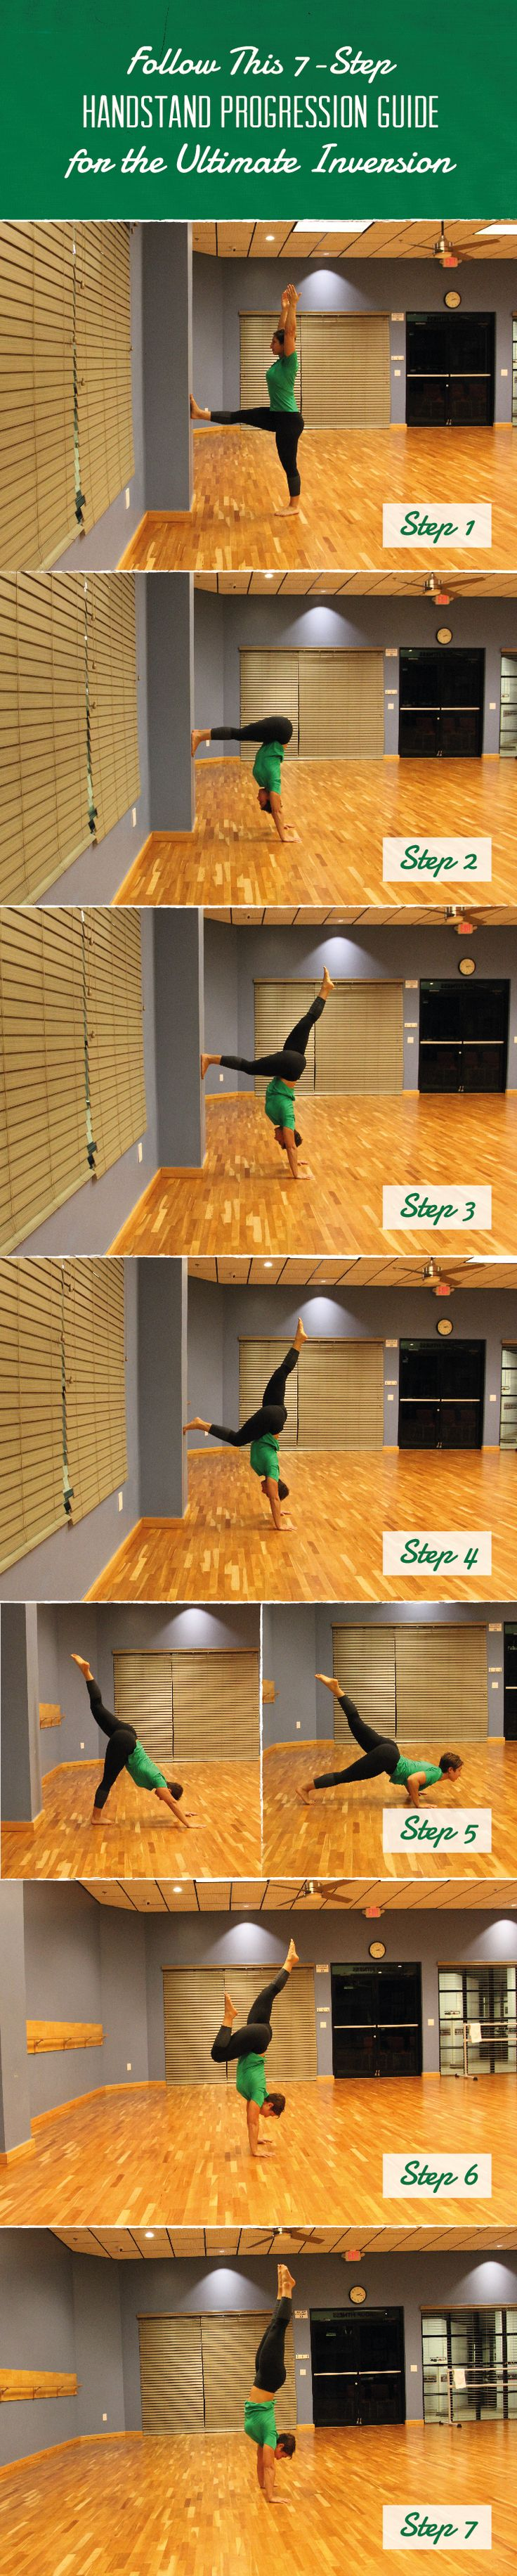 Follow these 7 simple steps for a handstand progression guide guaranteed to increase your upper-body strength, balance and confidence. Get inverted today!